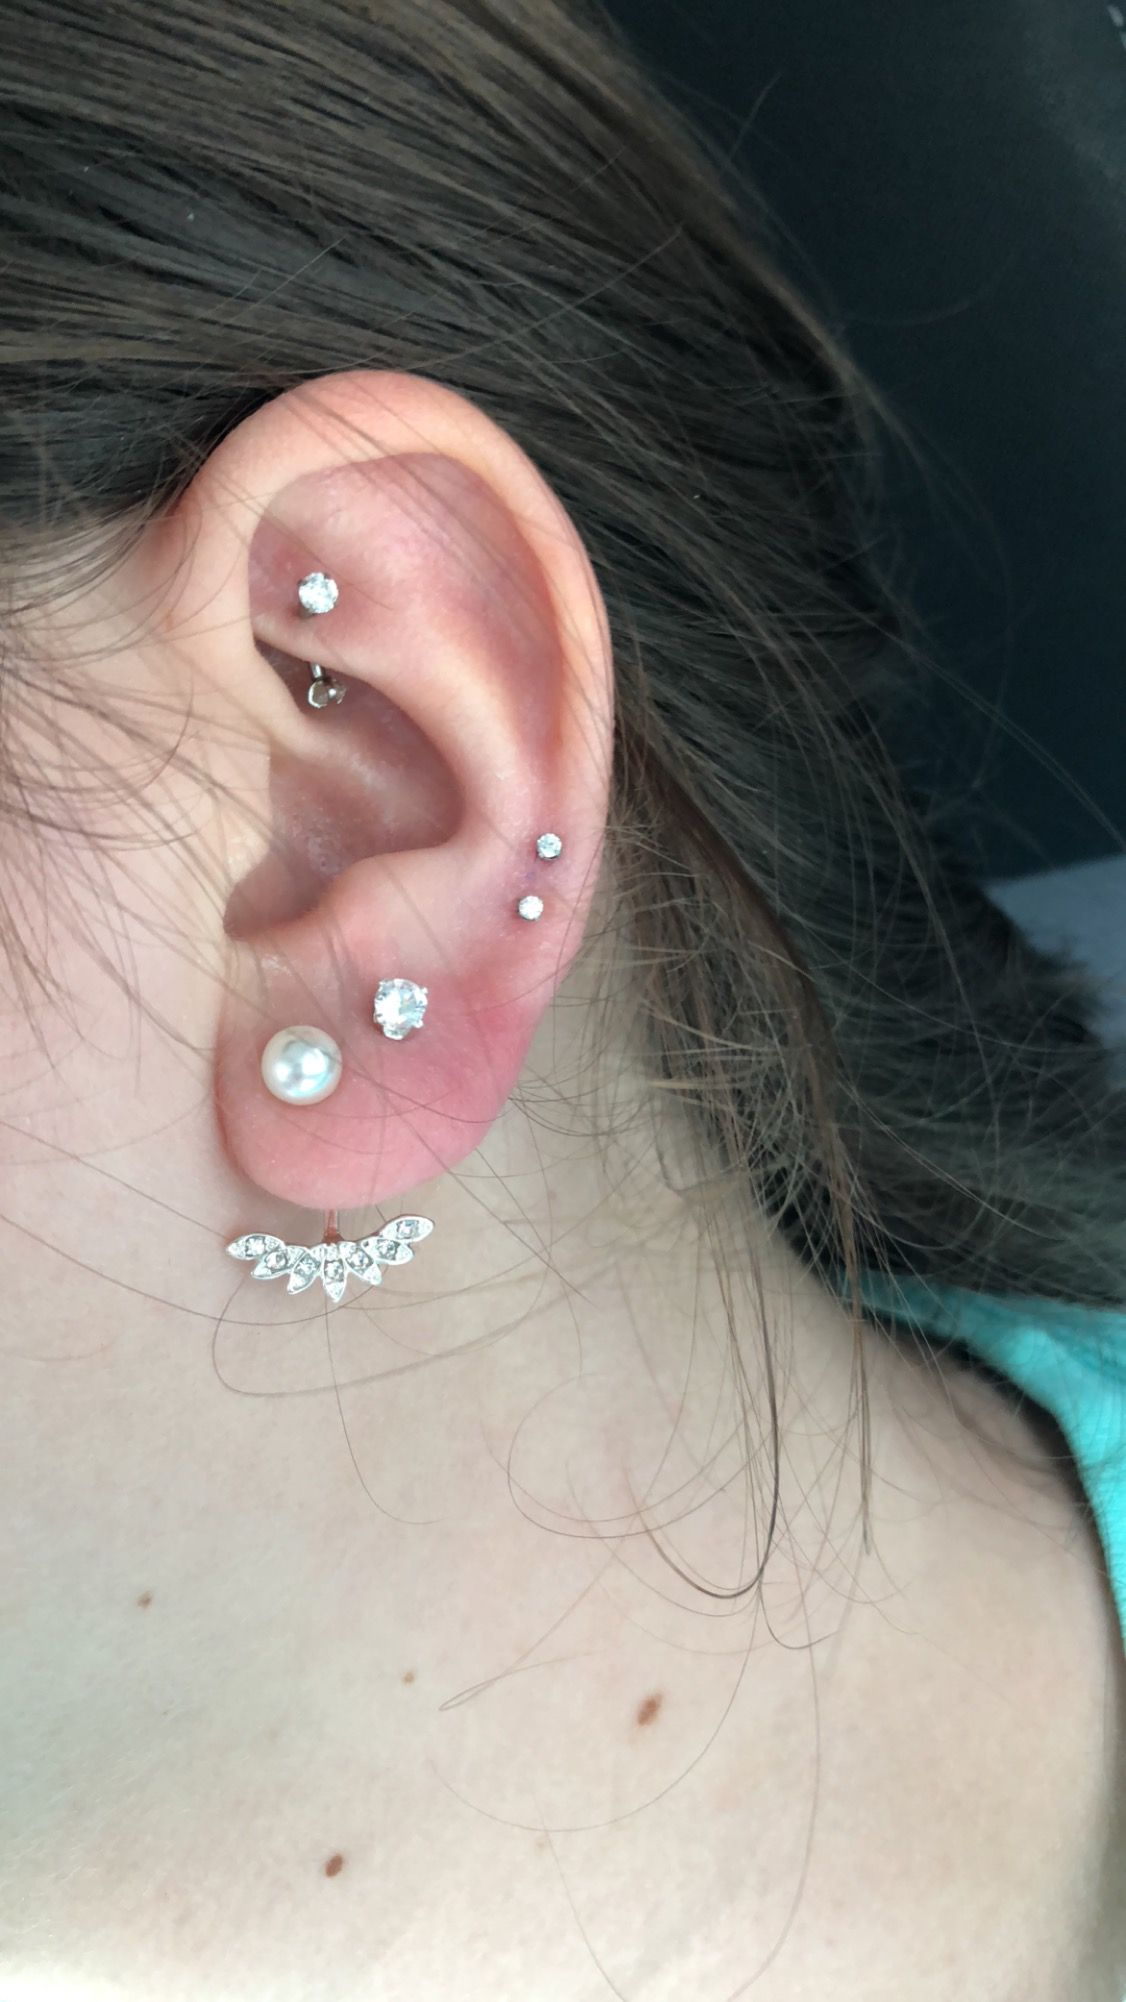 hight resolution of rook piercing upper lobe lower cartilage and double lobe